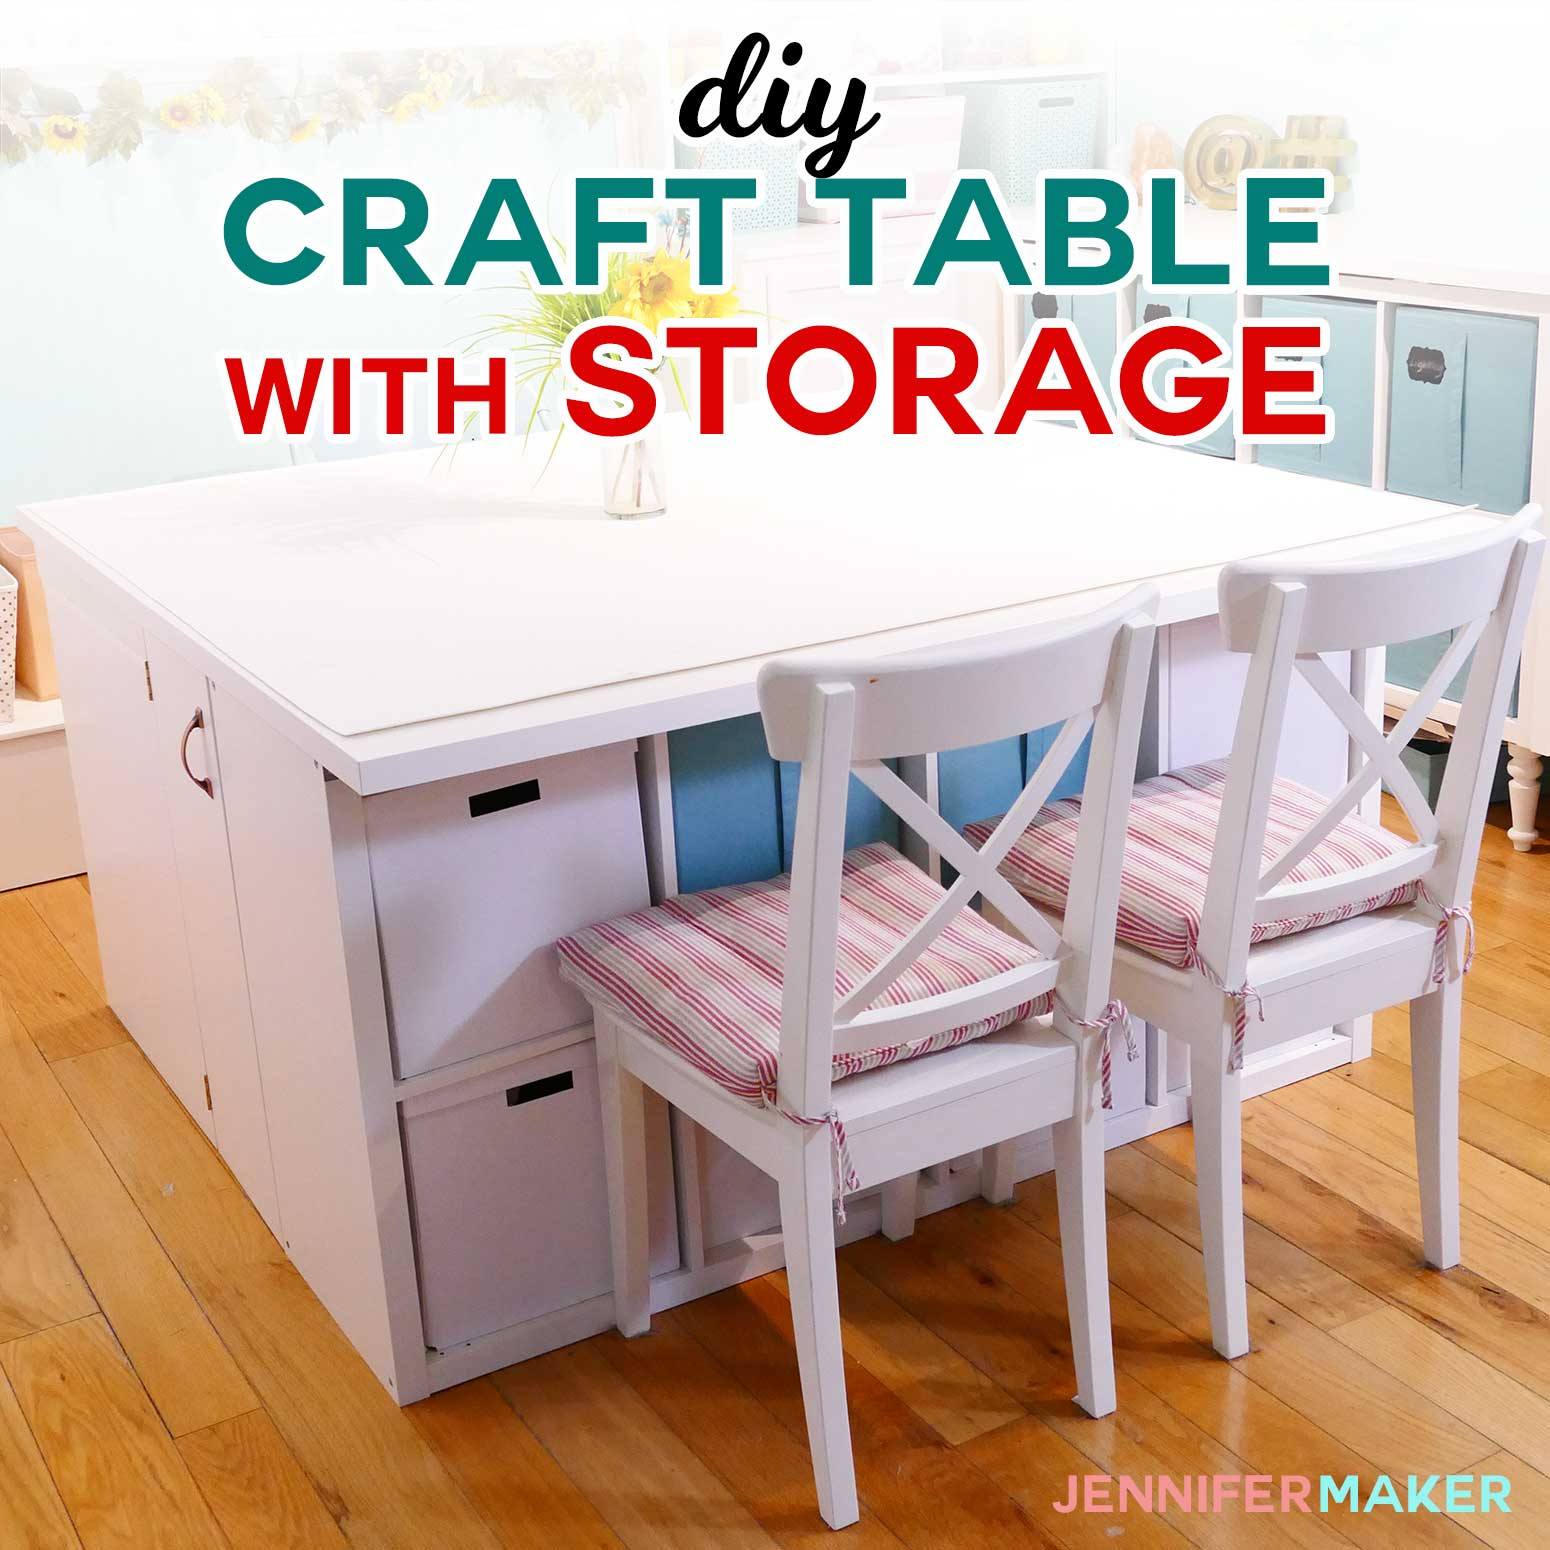 Diy Ikea diy craft table with storage my ikea hack maker